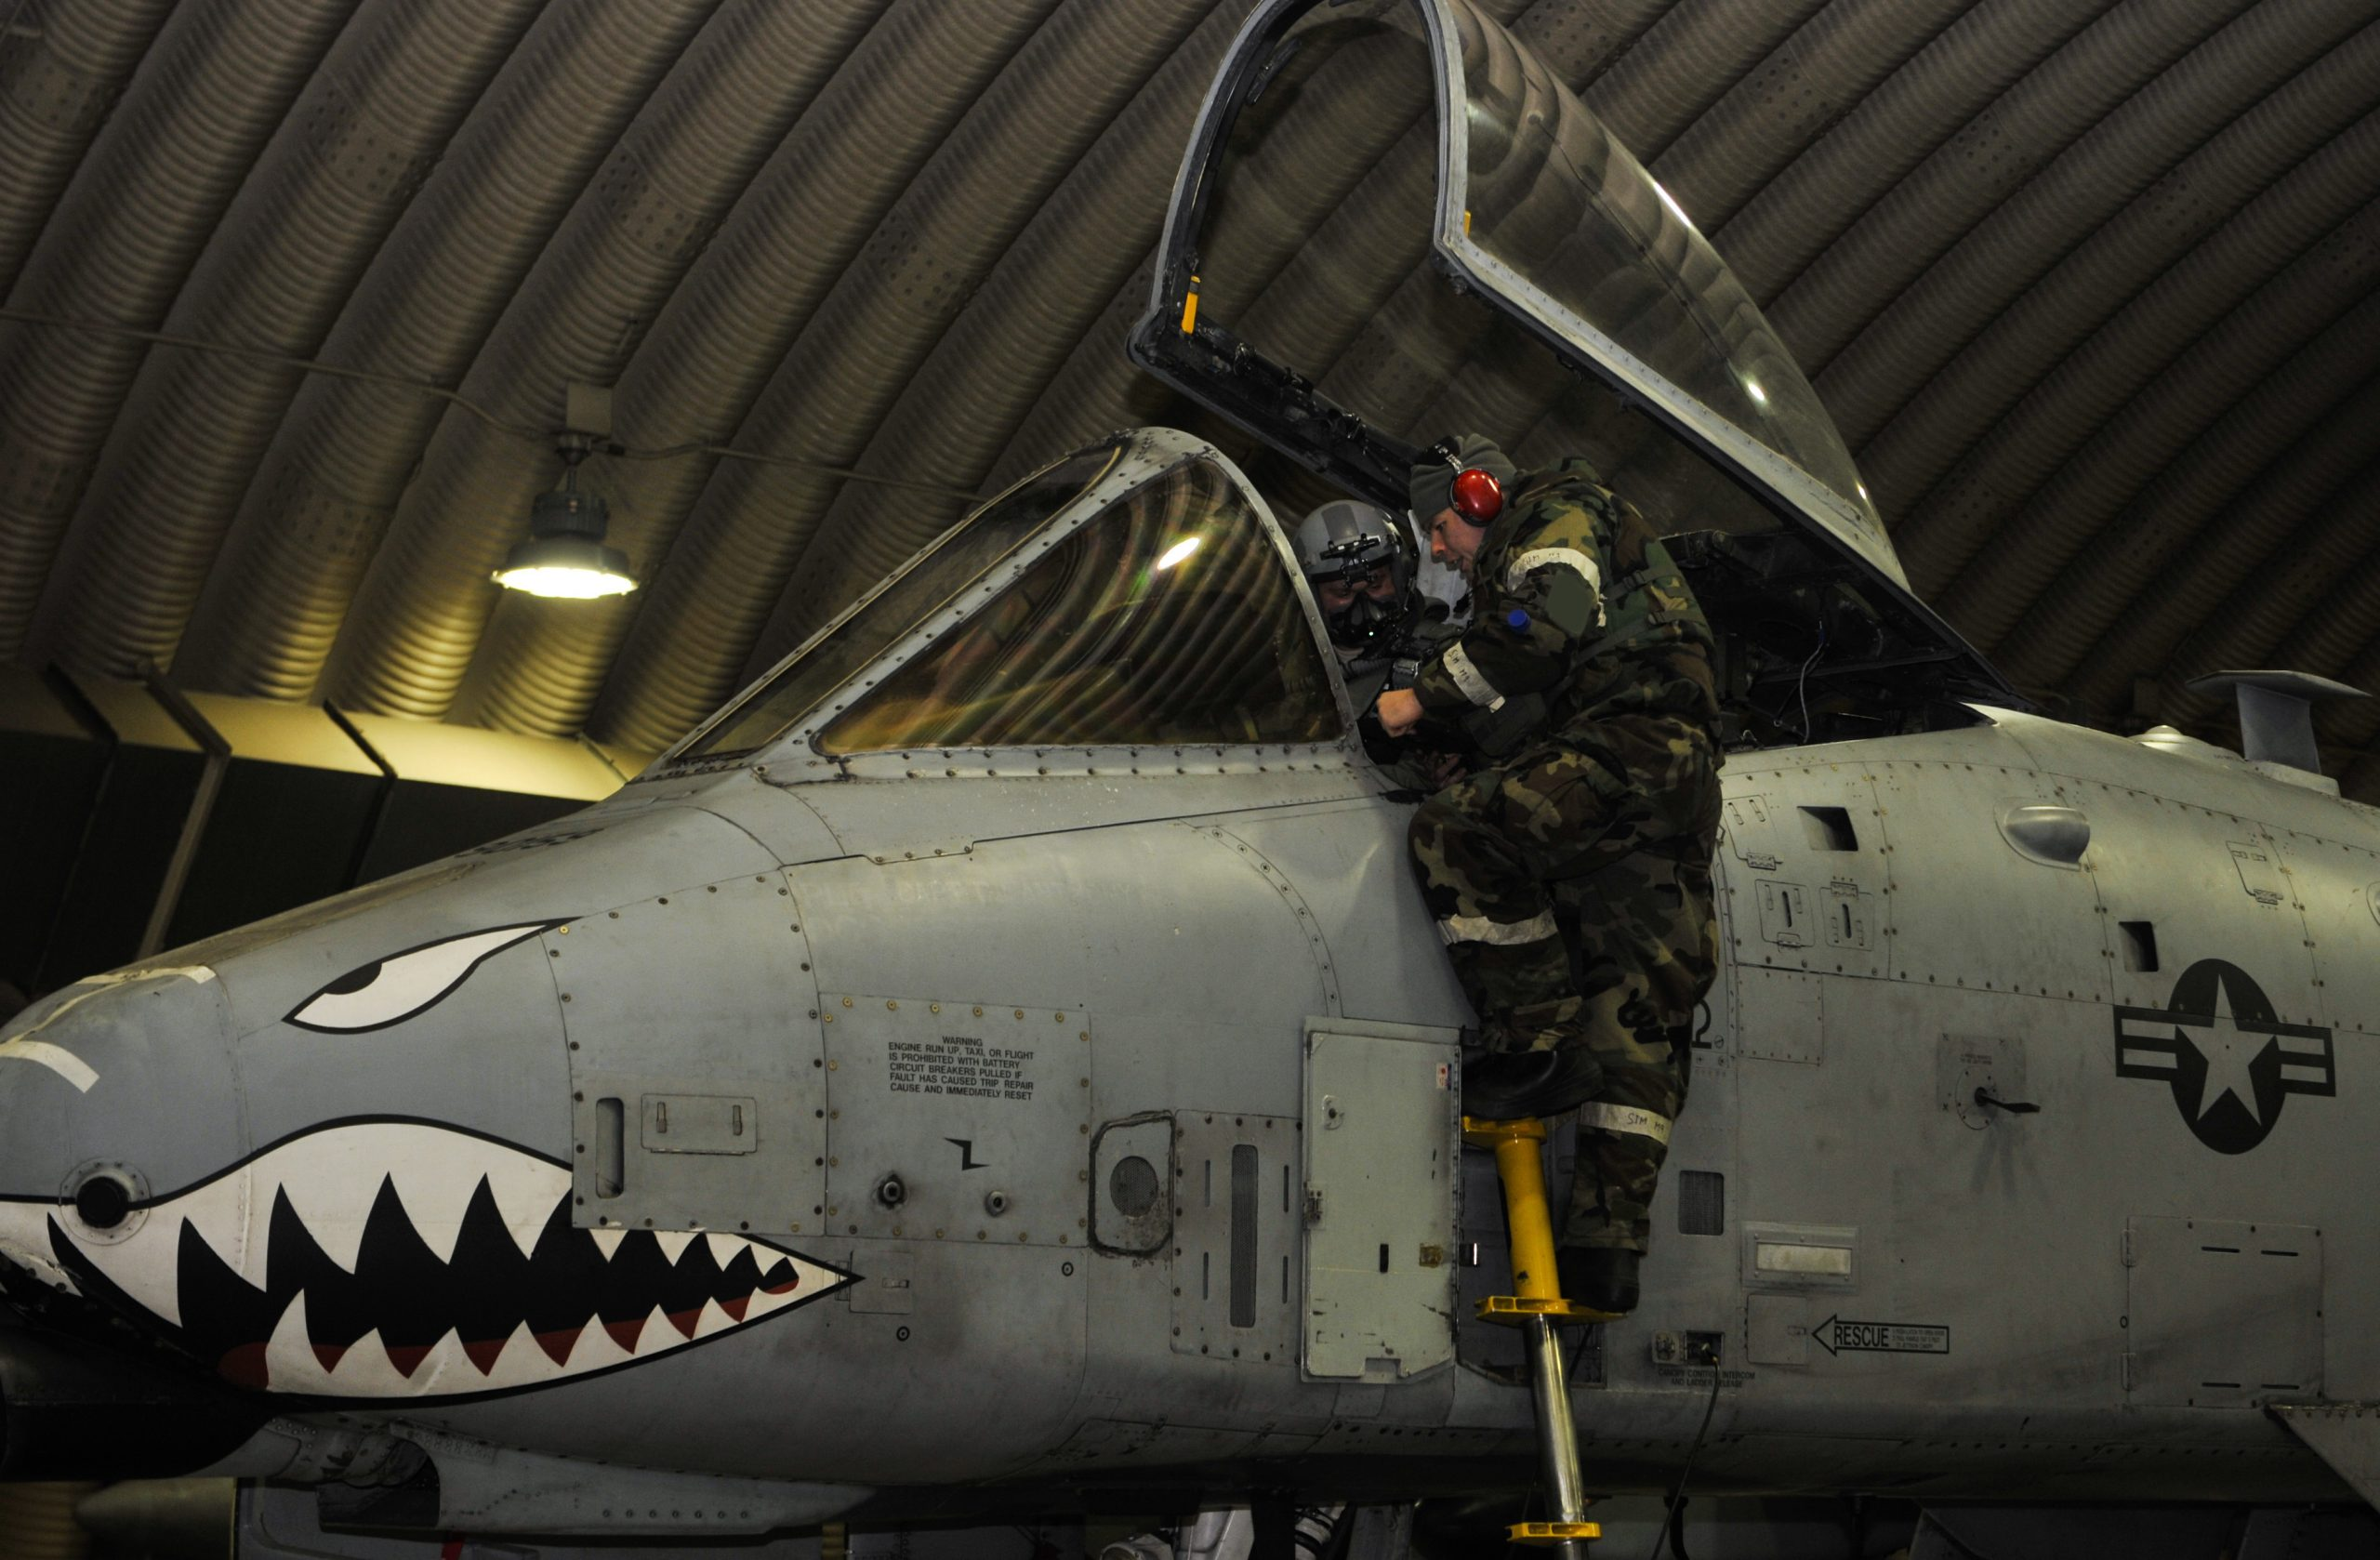 Here's What the Air Force Can't Get Rid Of, According to the Draft NDAA - Air Force Magazine